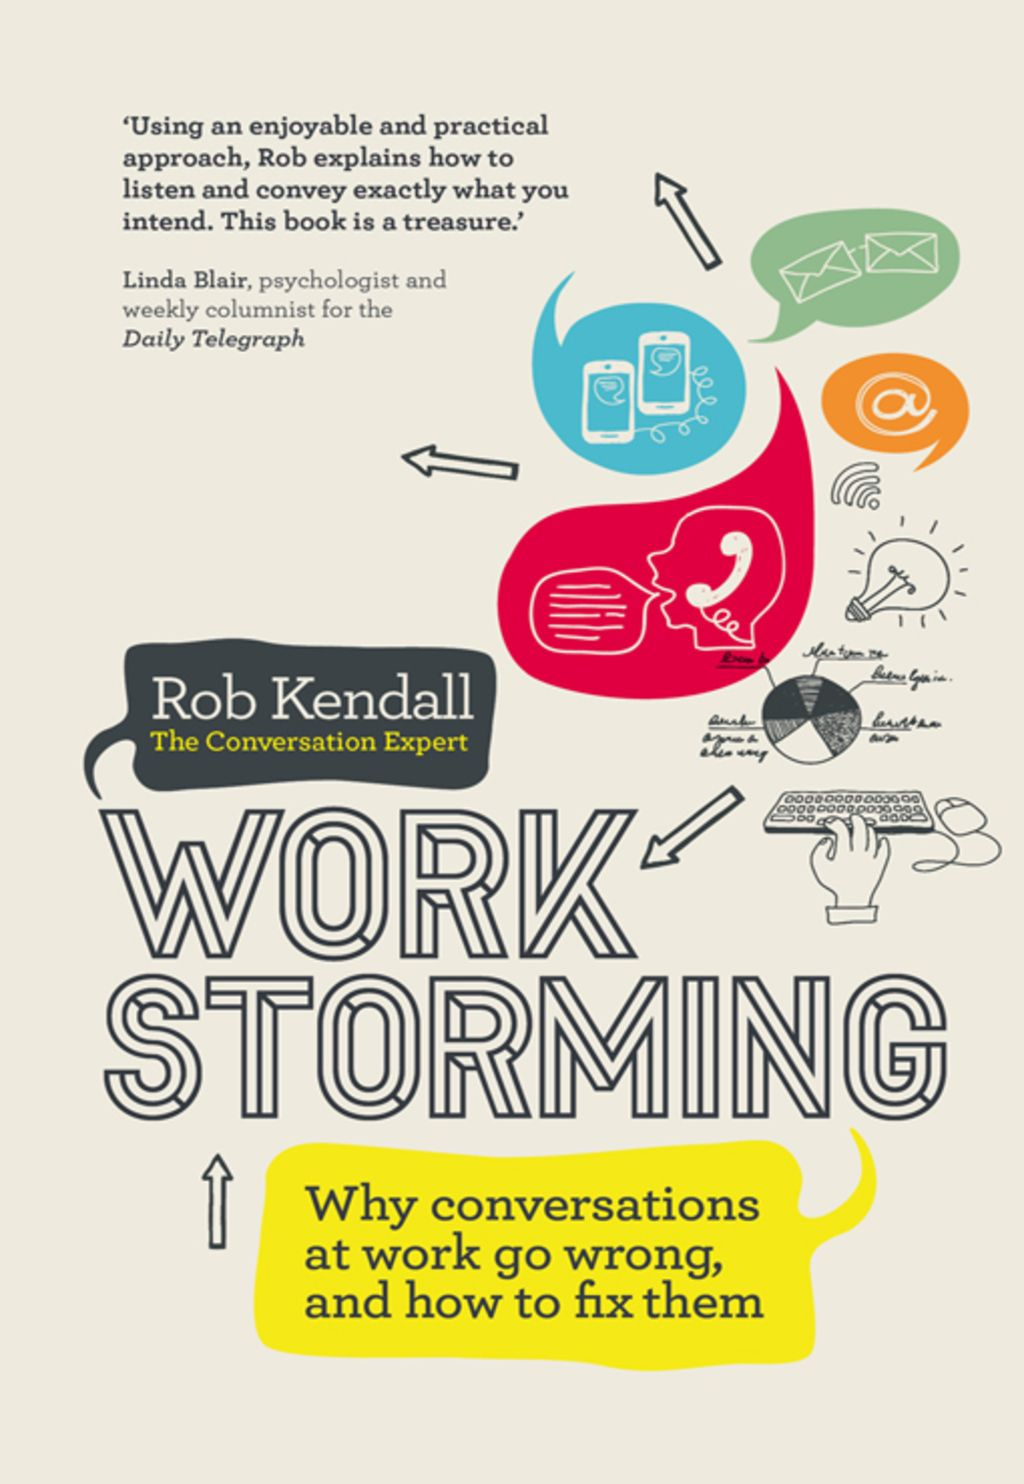 Workstorming Ebook Business Books Small Business Trends